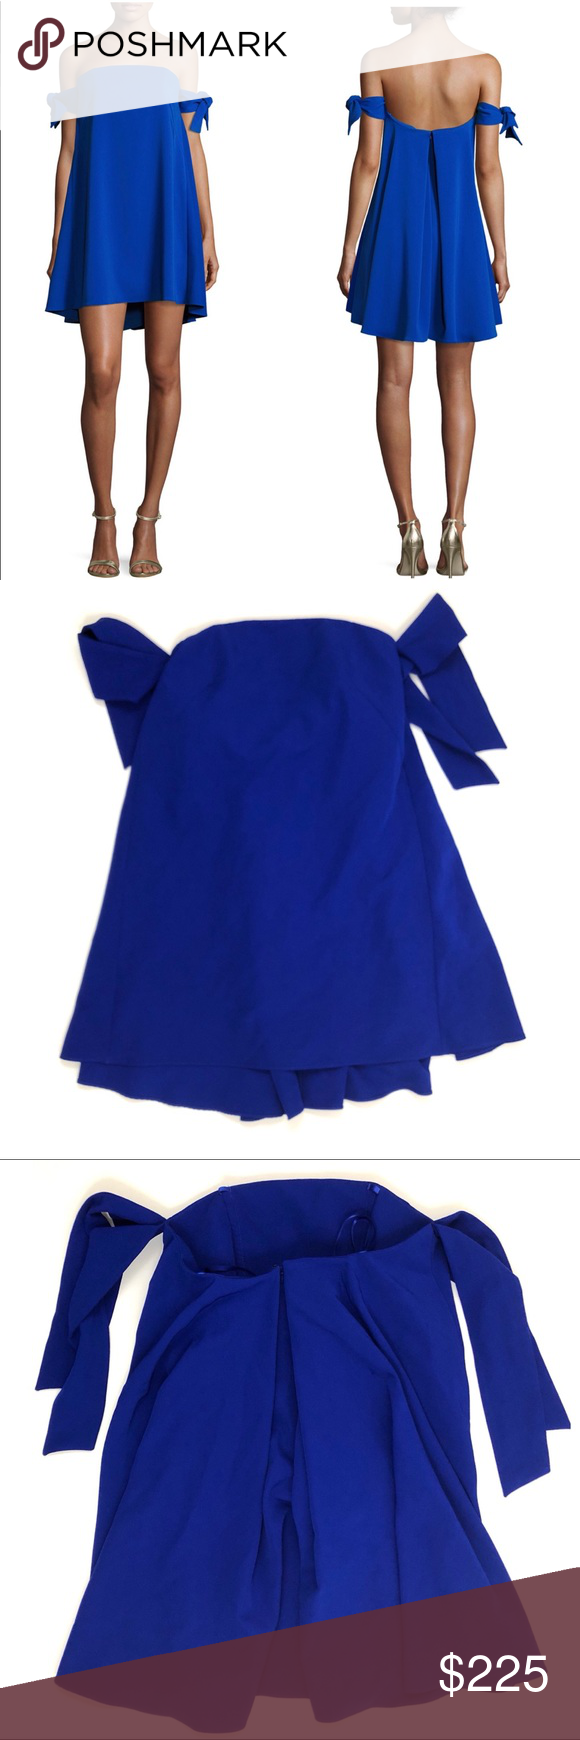 4eaff77e84bcc NWT Jade blue Off-the-Shoulder Italian Swing Dress Jade bright blue Off-